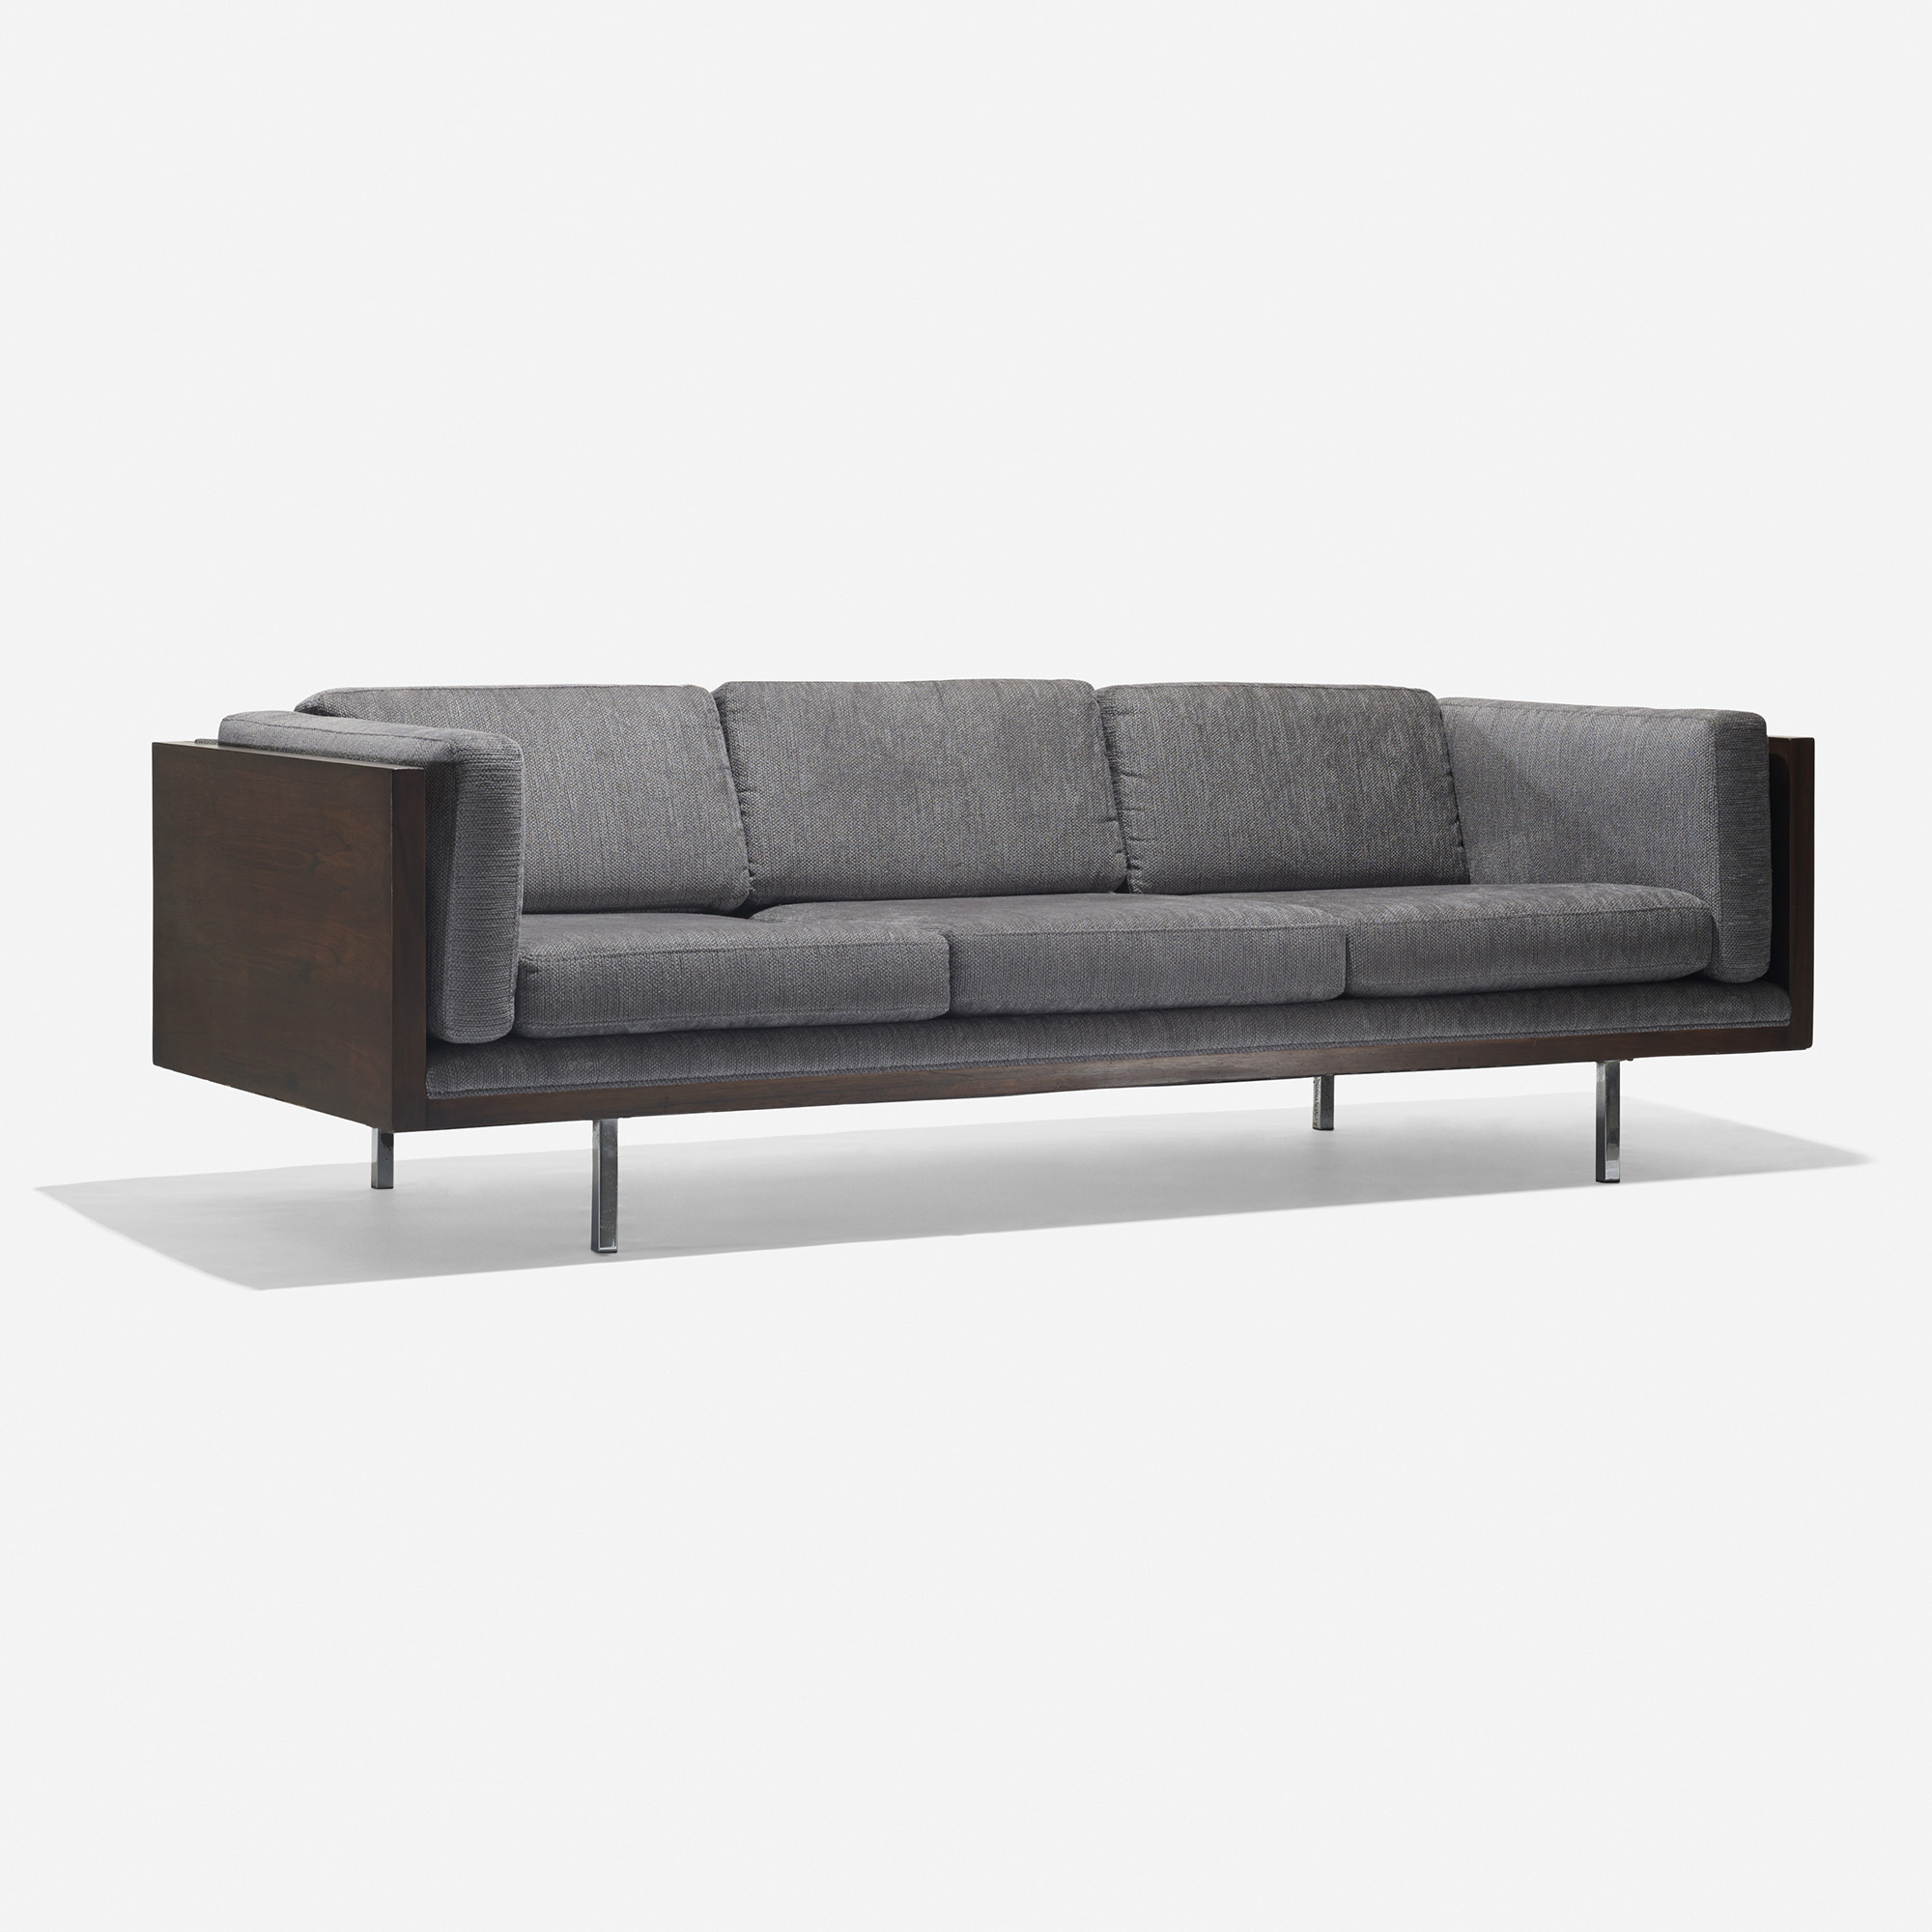 145 Milo Baughman Sofa 1 Of 4